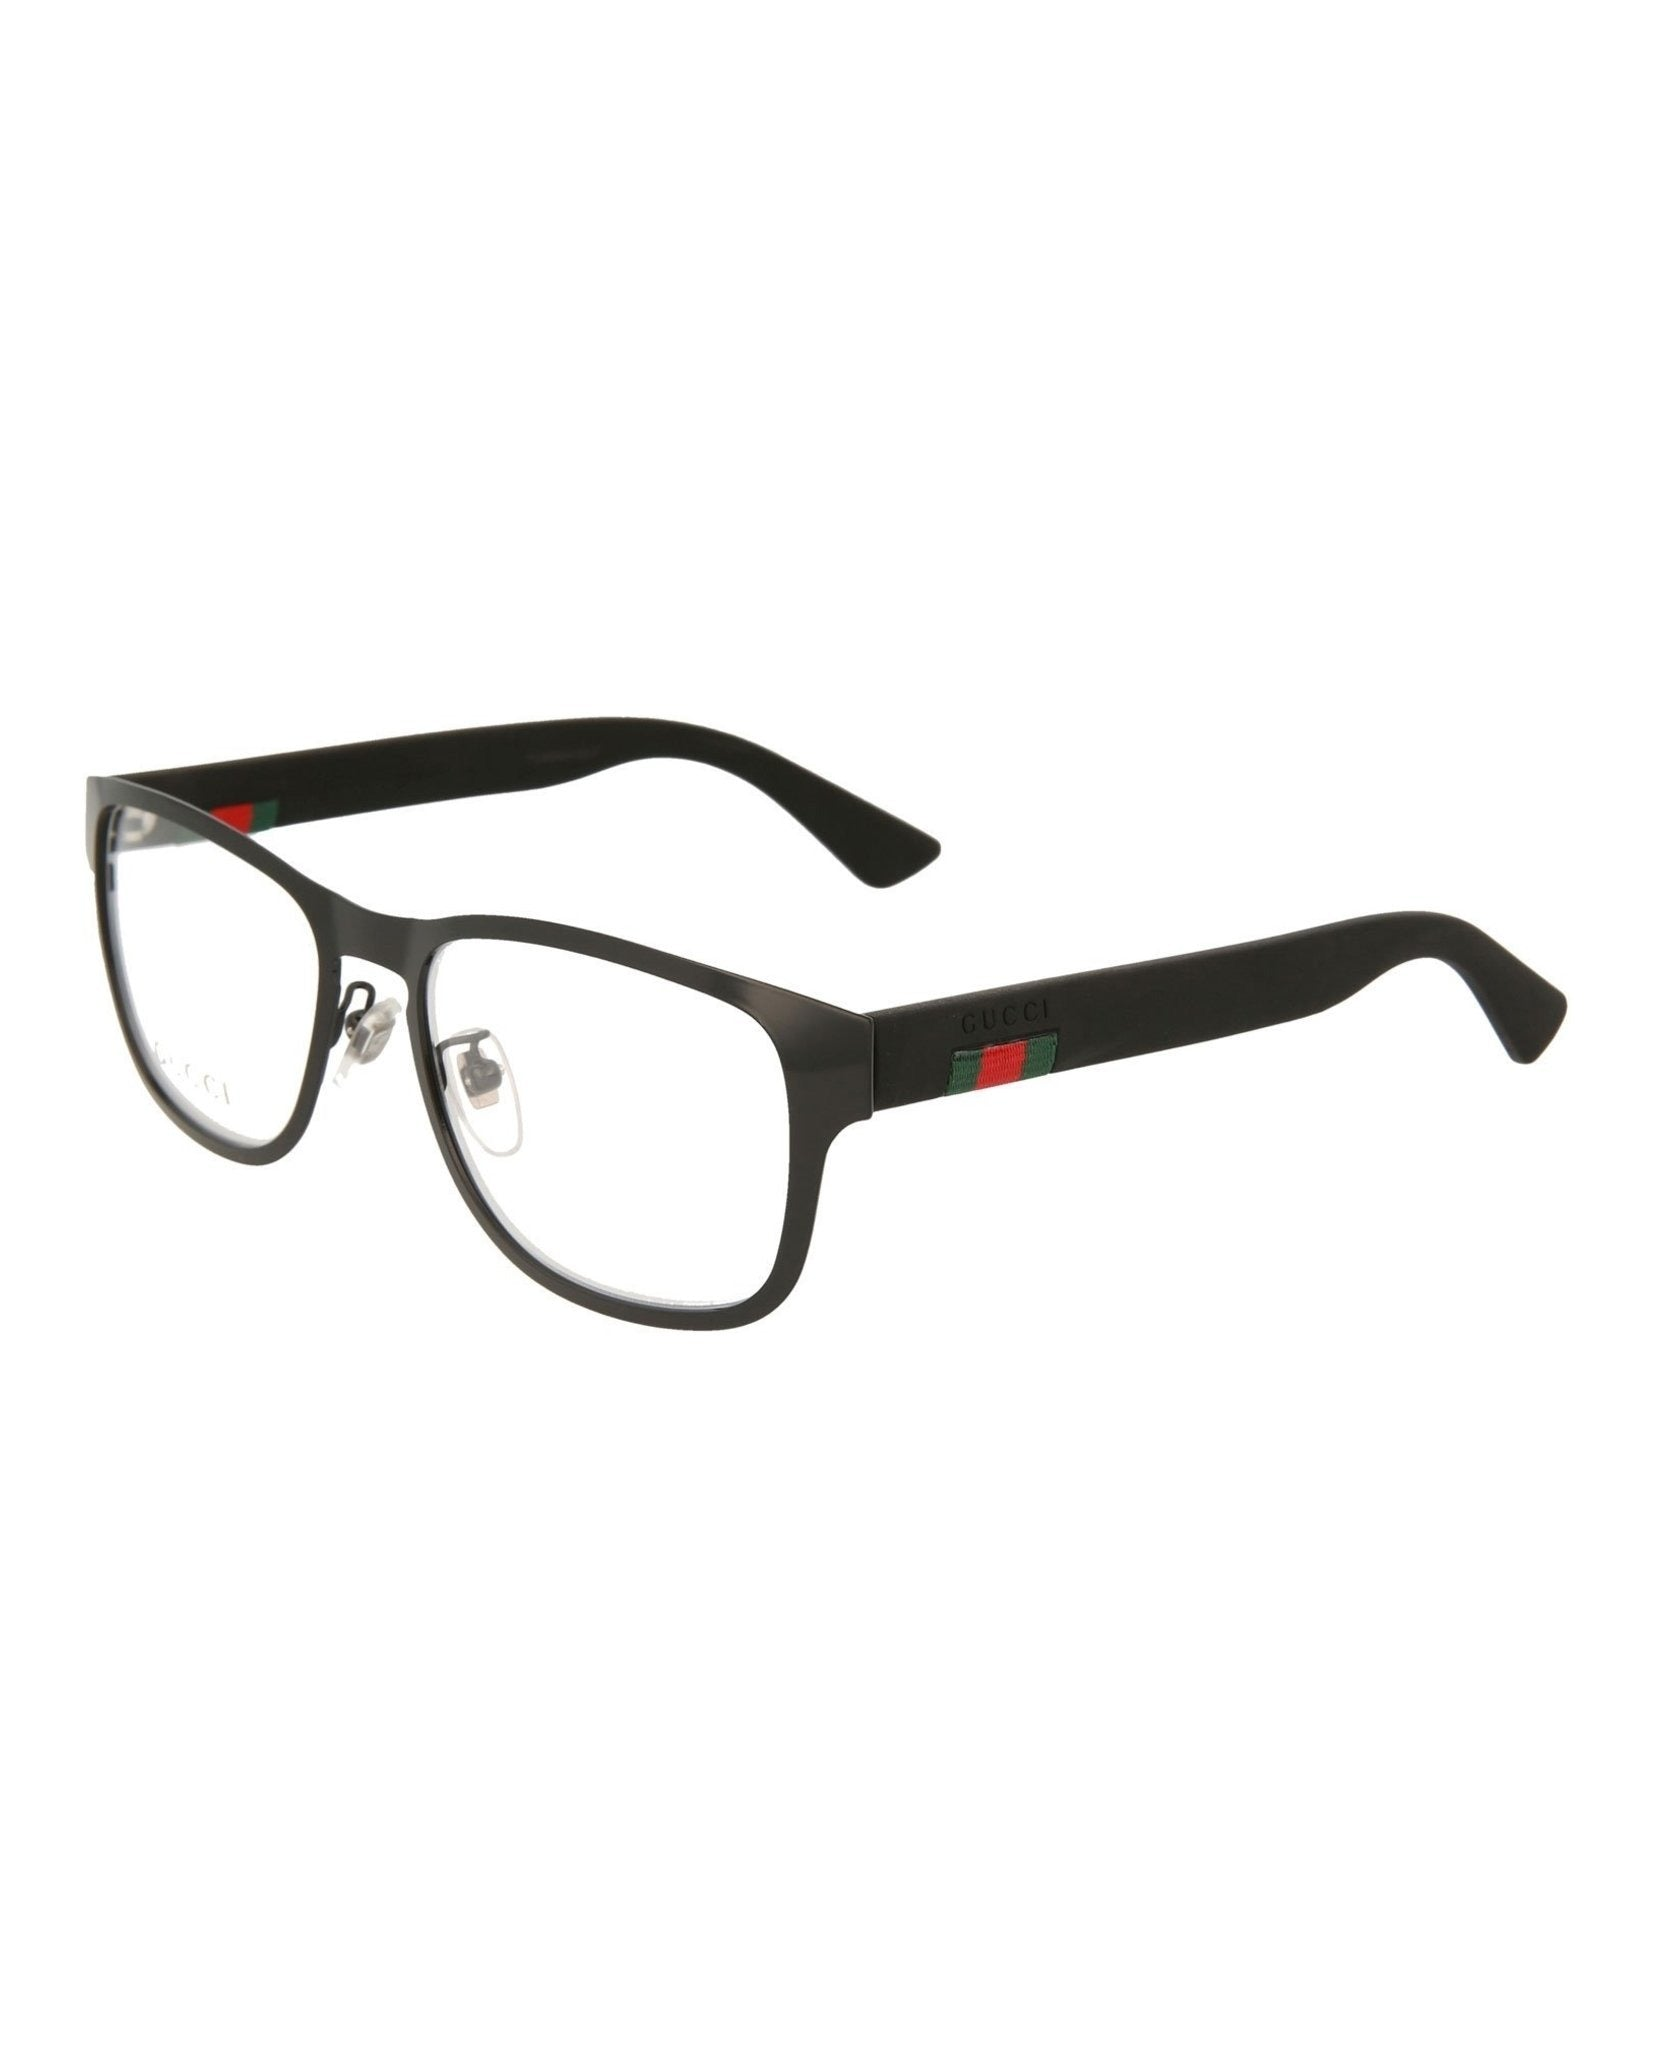 Gucci Square/Rectangle Optical Frames